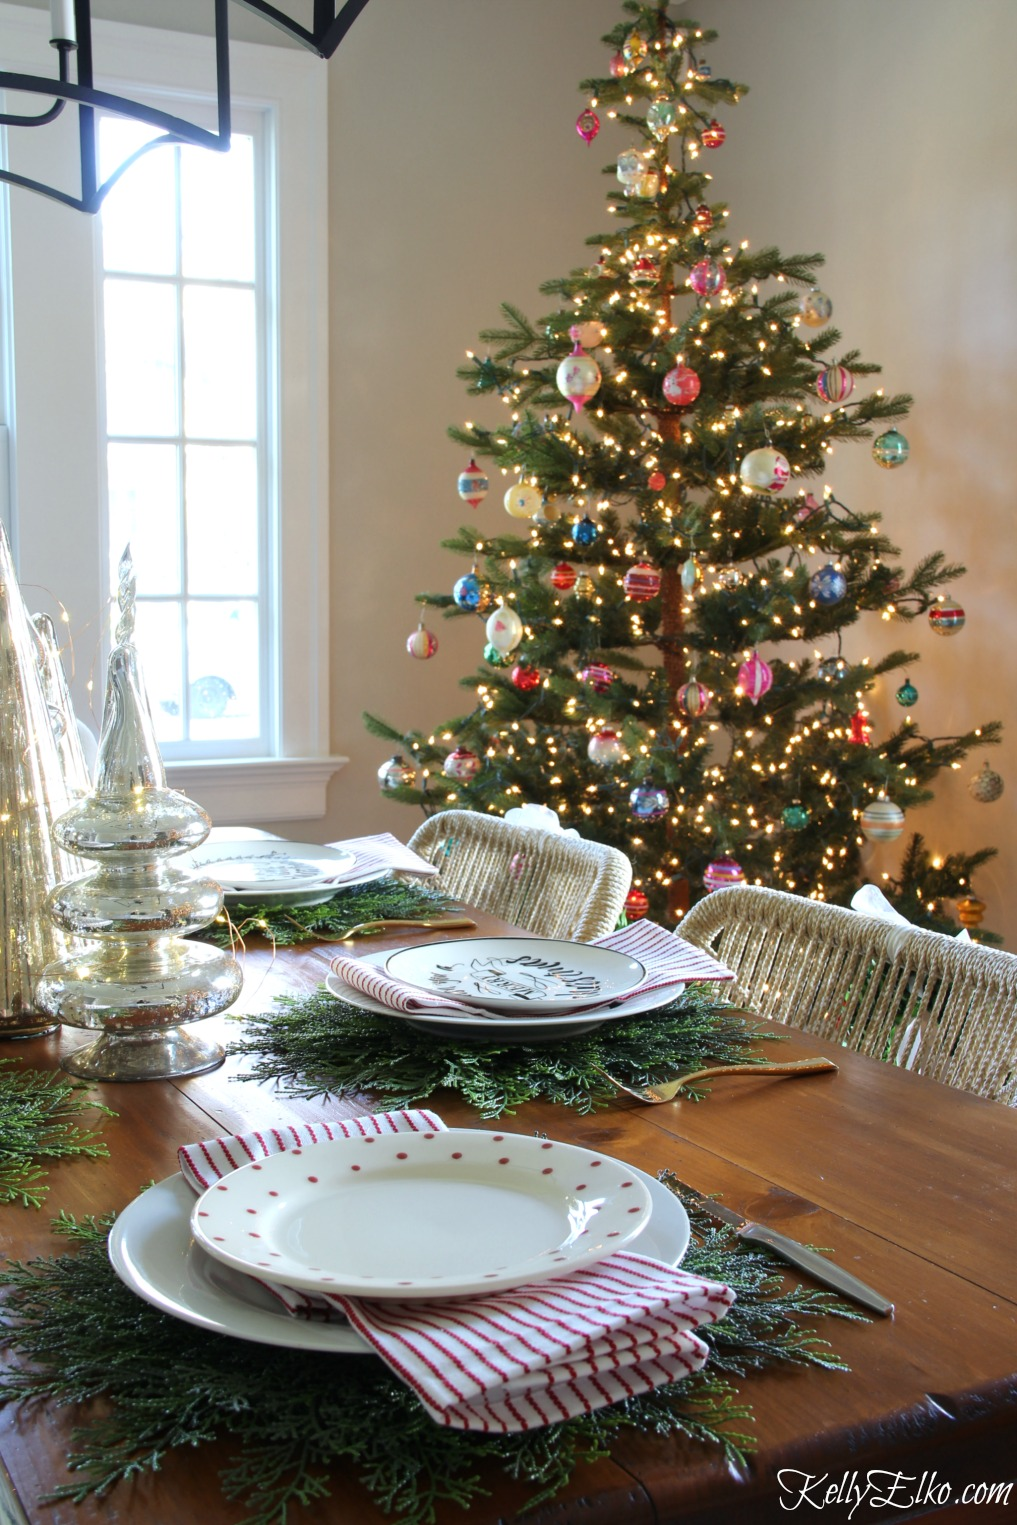 Christmas Home Tour - love this table setting with cedar placemats! kellyelko.com